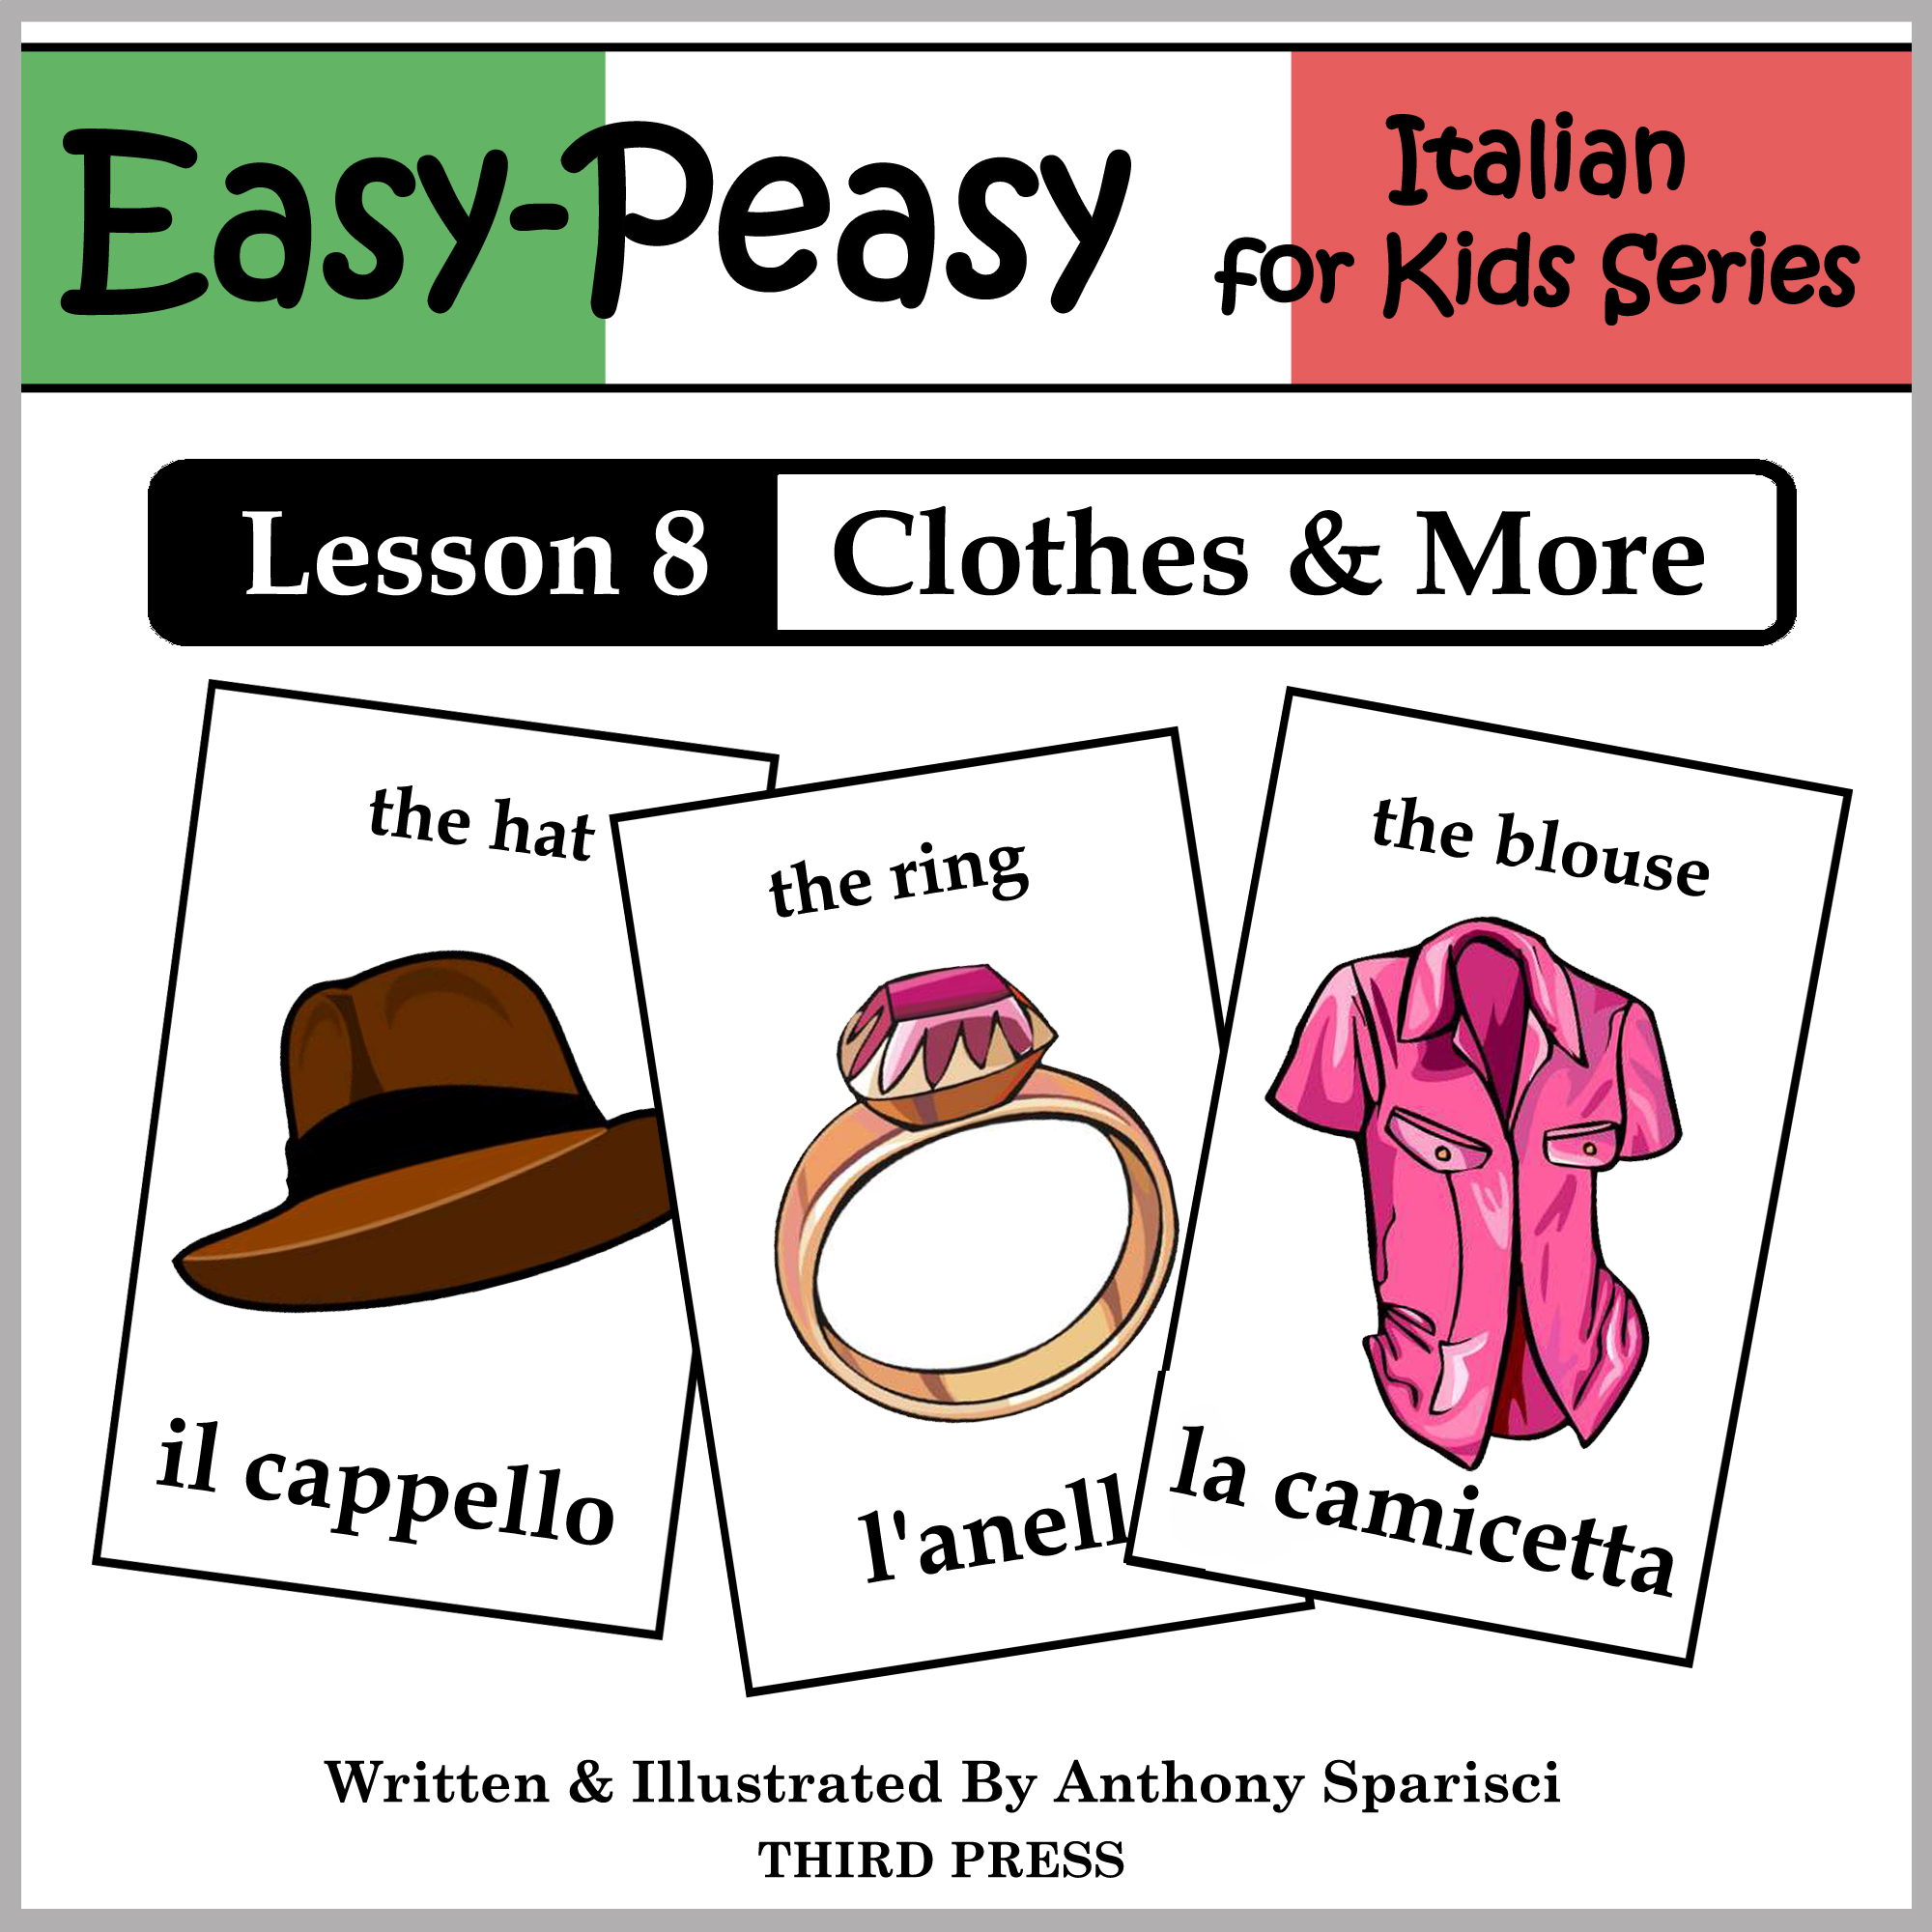 Italian Lesson 8: Clothes, Shoes, Jewelry & Accessories